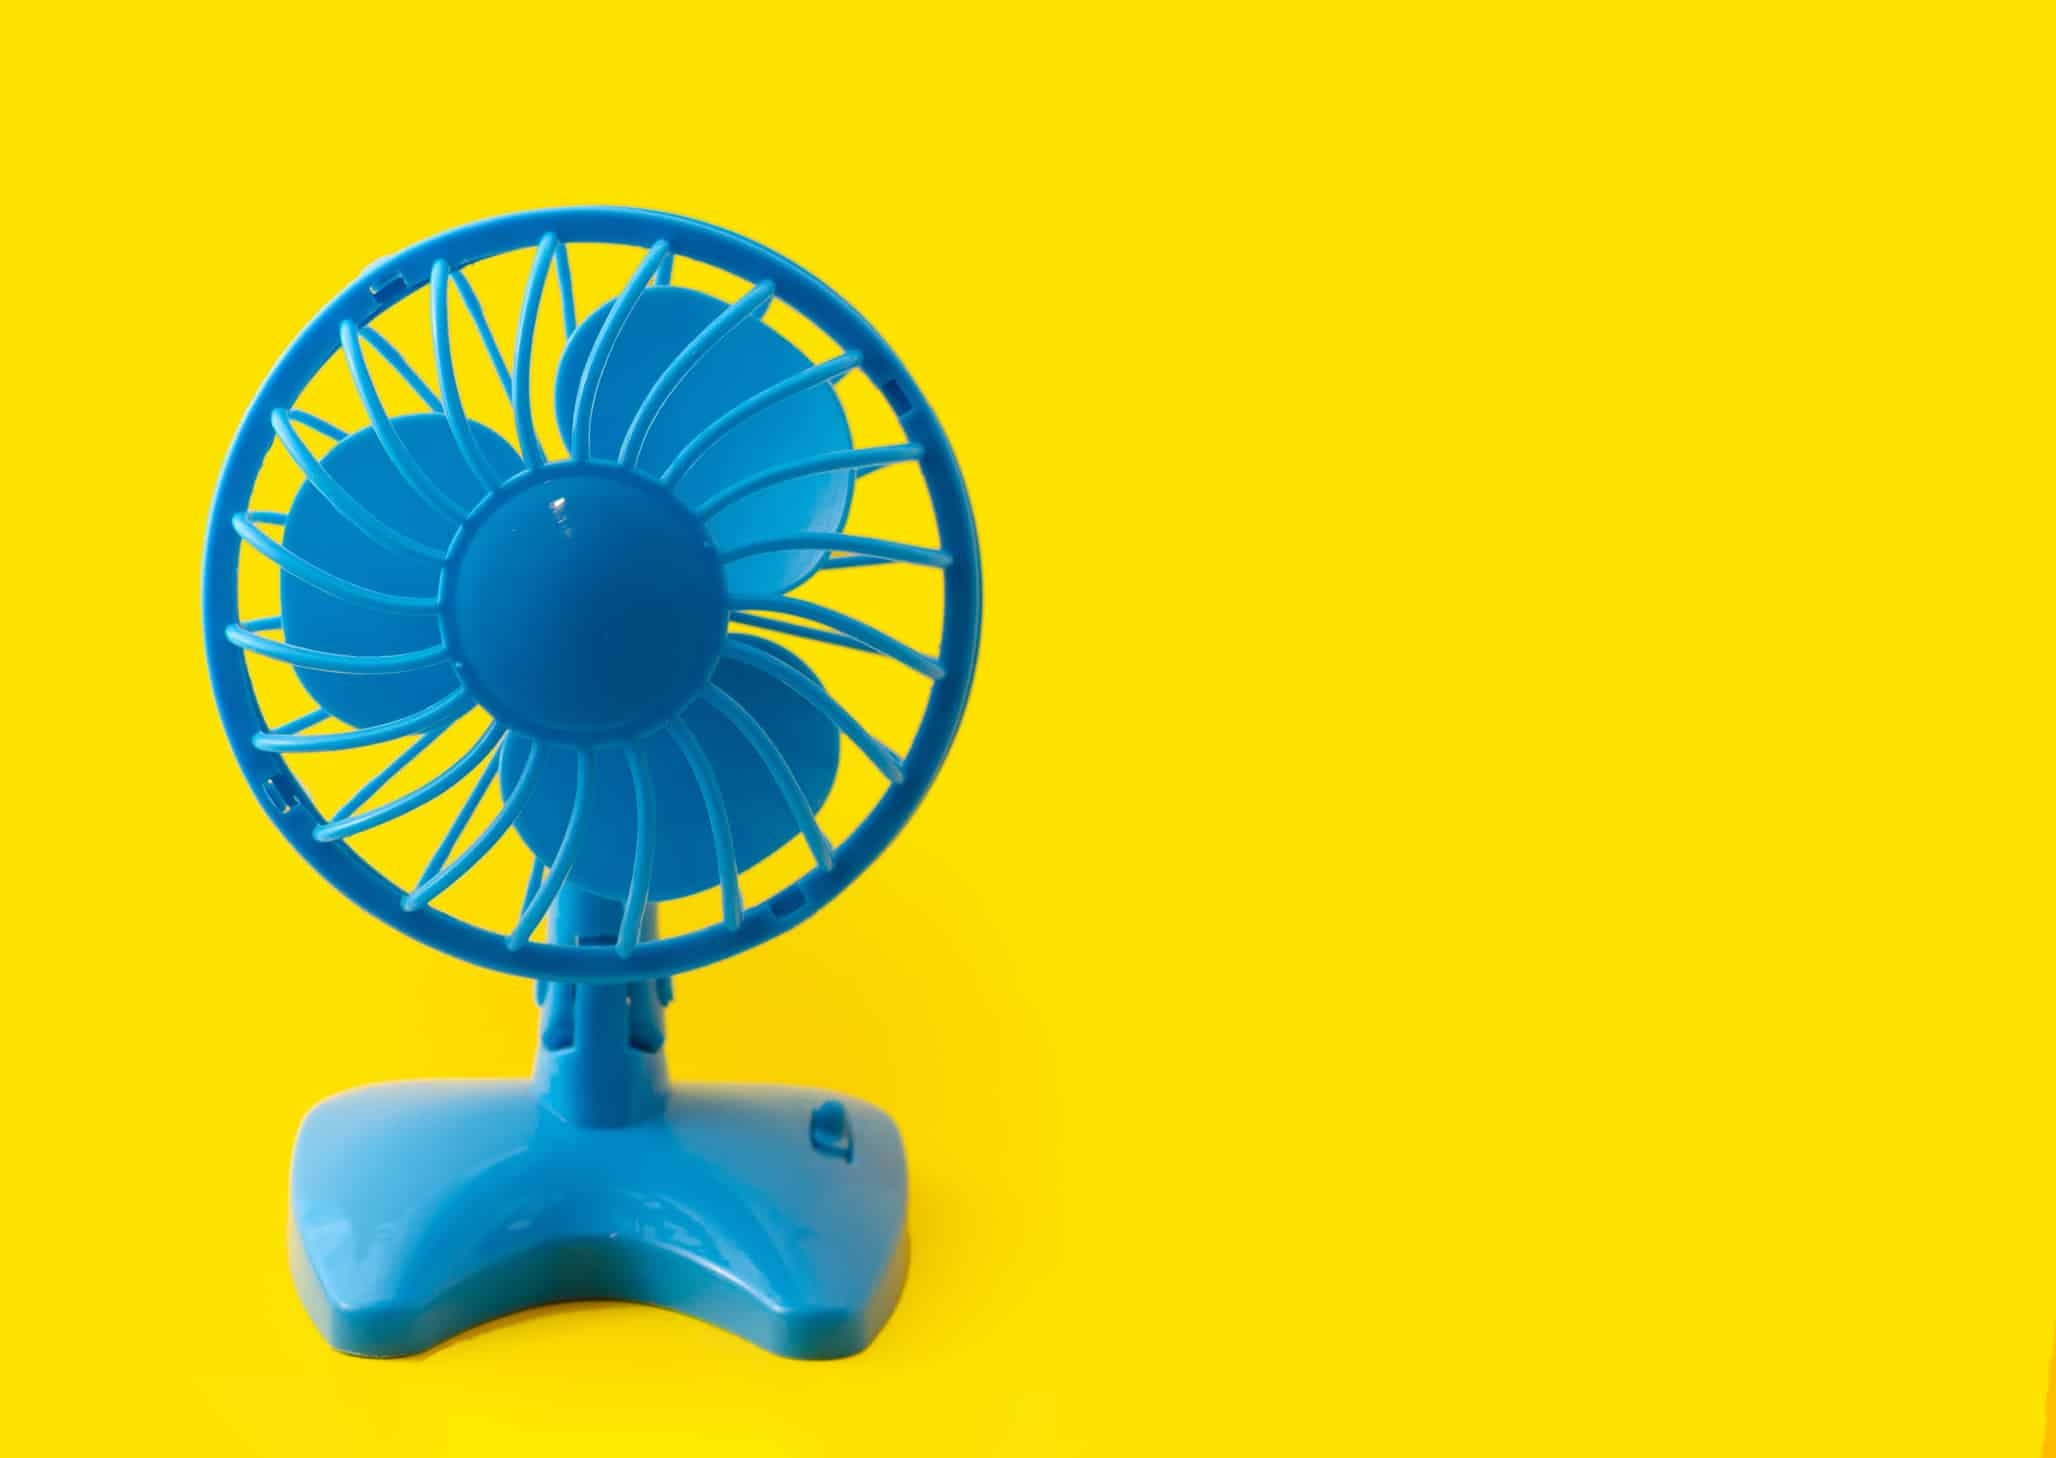 electric blue plastic fan isolated on yellow background